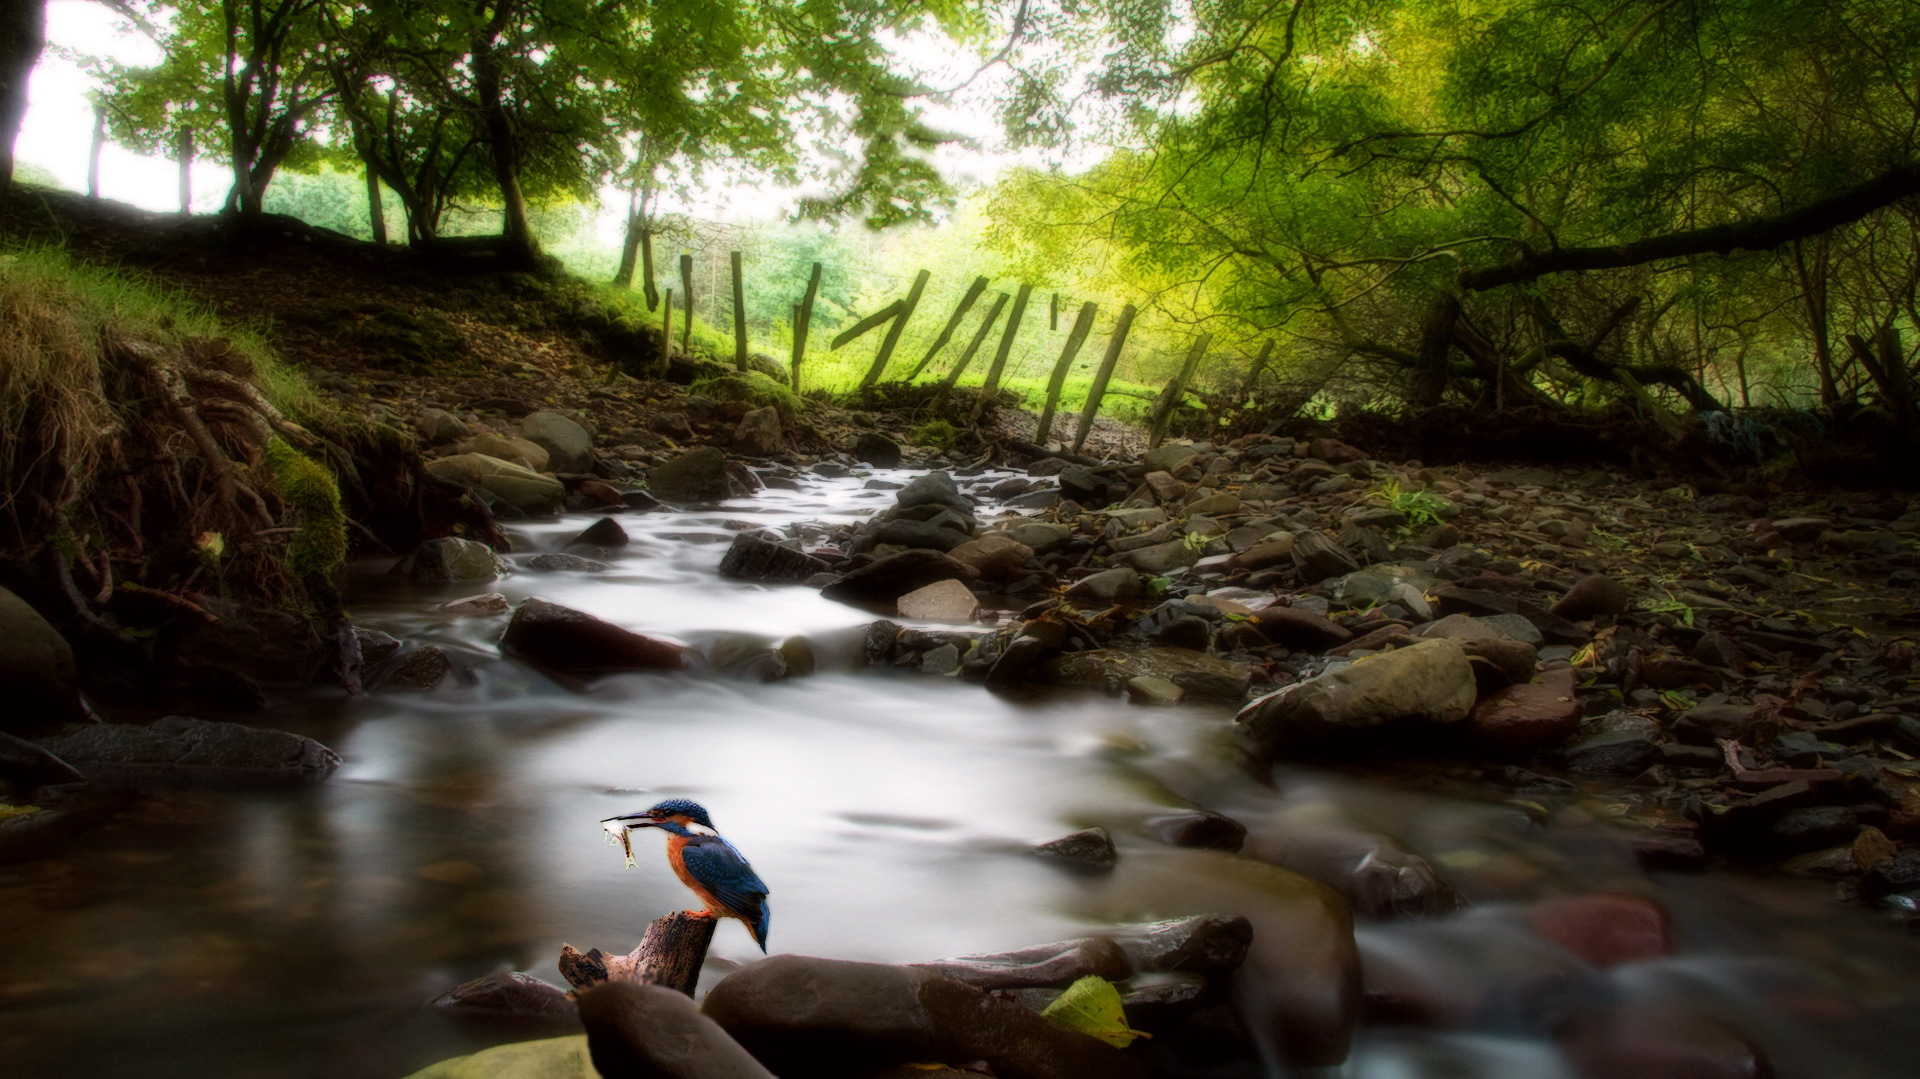 click to free download the wallpaper--Images of Natural Scene - A Bird Holding a Fish in the Mouth, Black Big Stones in the Rush River, Green Trees 1920X1080 free wallpaper download